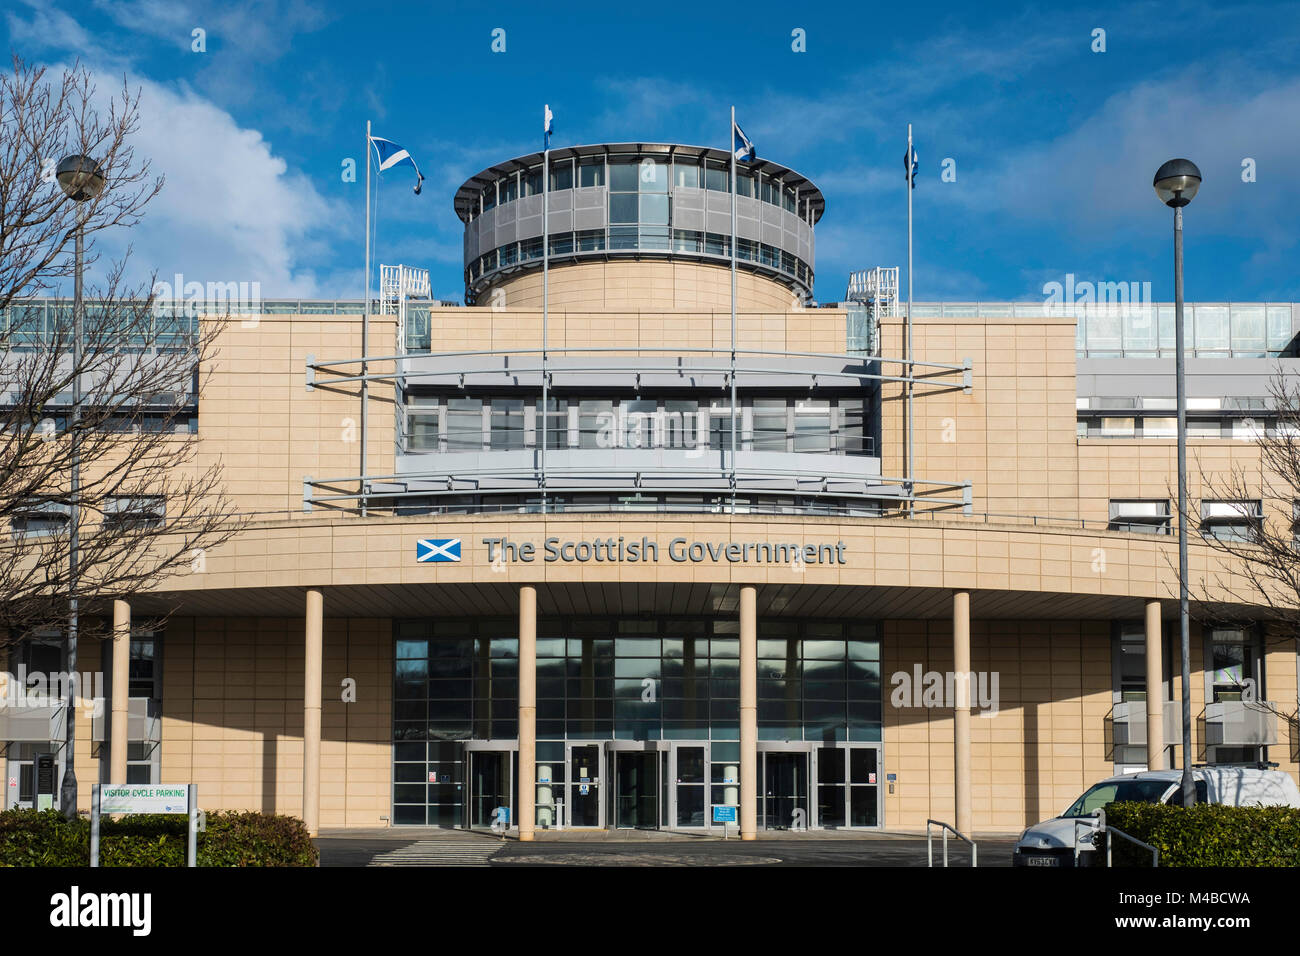 Exterior of Victoria Quay Scottish Government offices in Leith, Scotland, United Kingdom - Stock Image